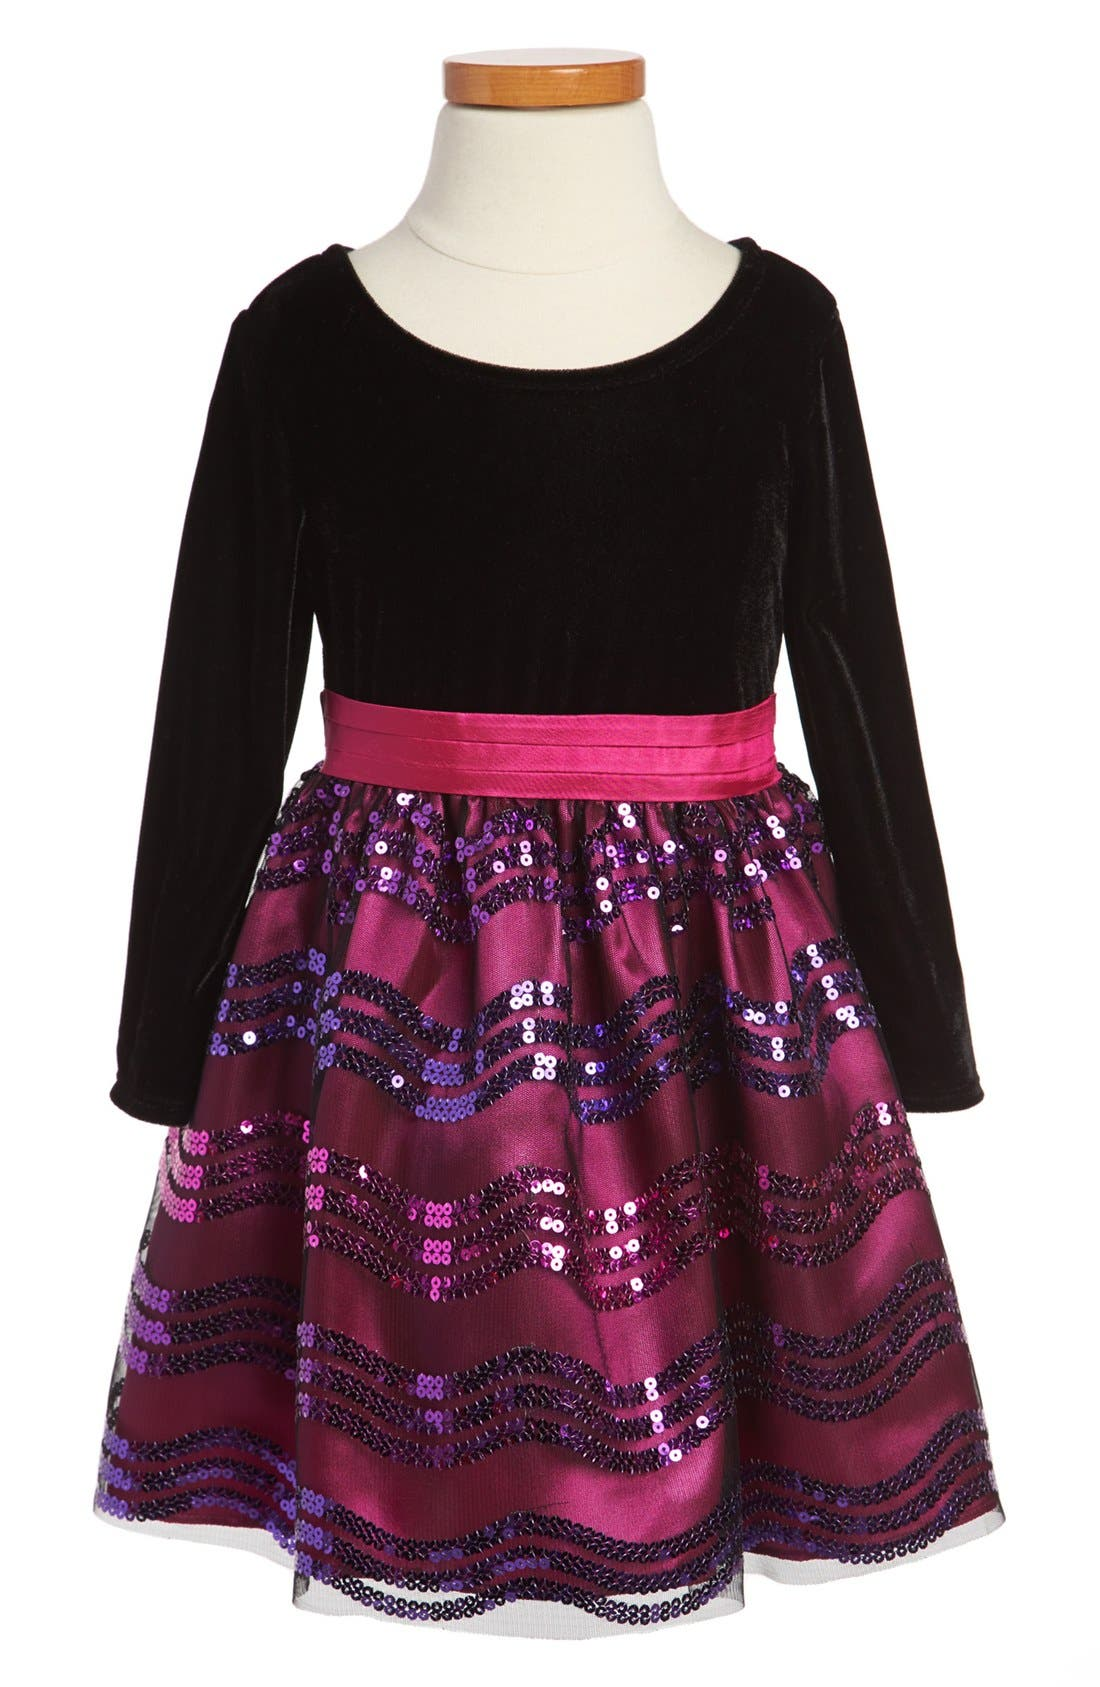 Alternate Image 1 Selected - Iris & Ivy Sequin Skirt Dress (Toddler Girls)